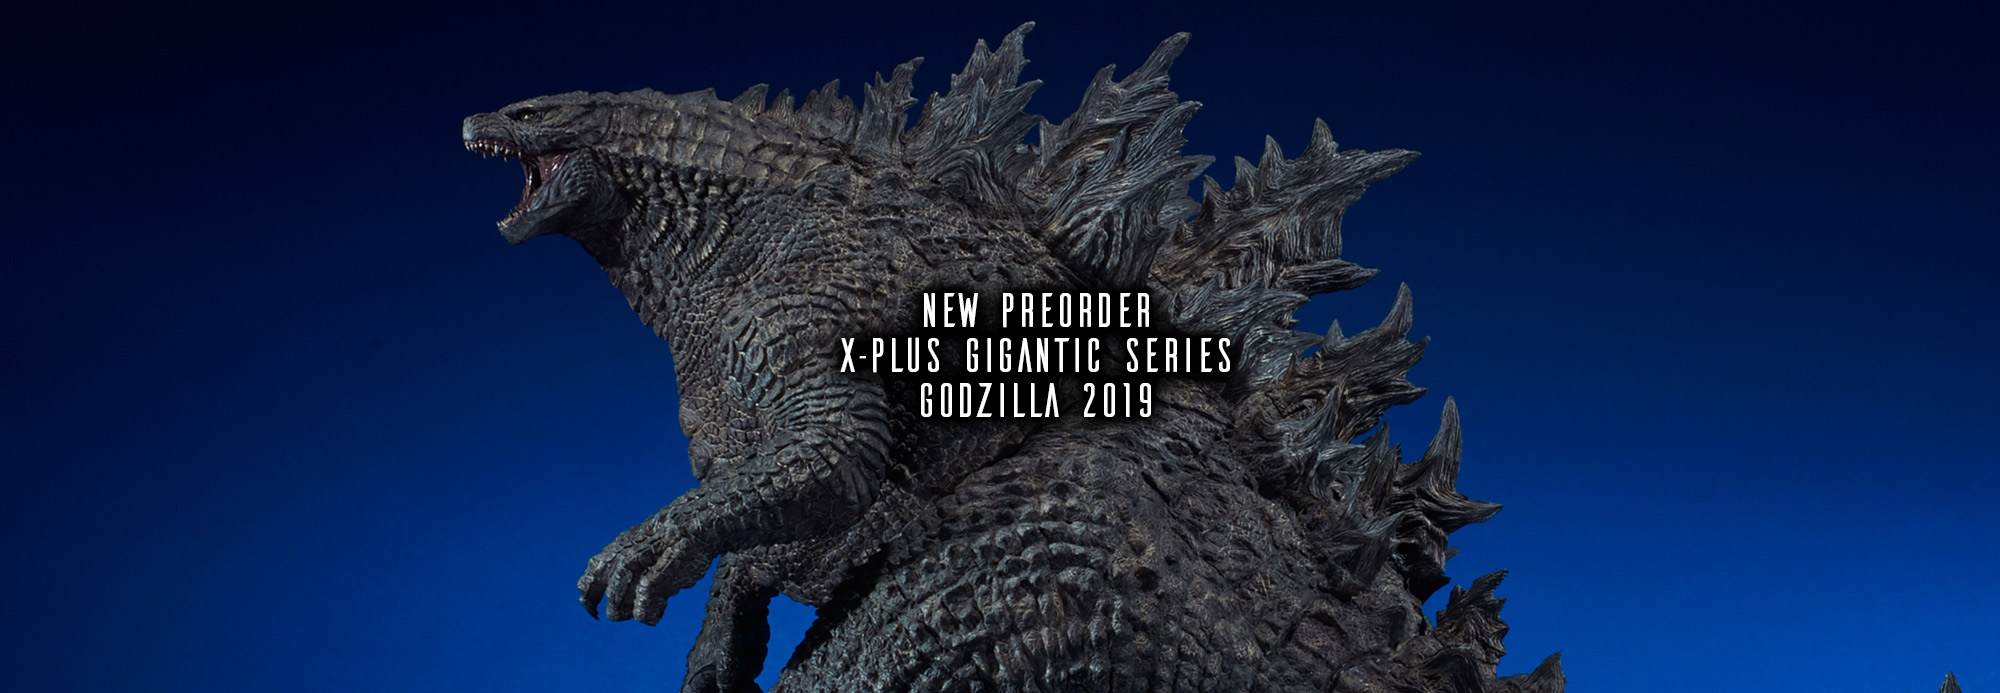 X-Plus Gigantic Series Godzilla 2019 up for pre-order.